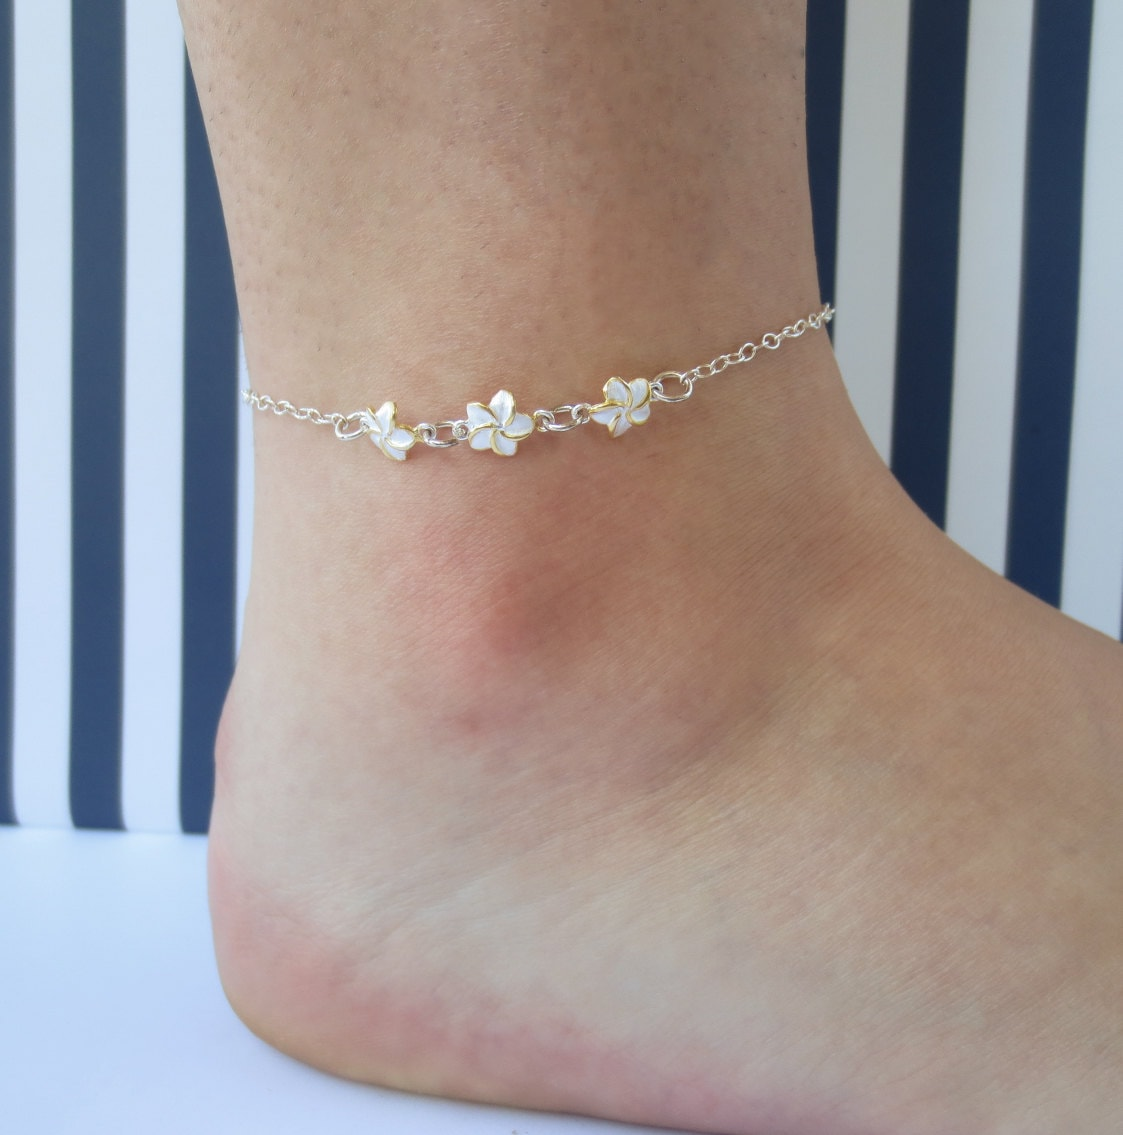 jewelry opal bracelet previous inlay anklet ankle jf flower white bling hawaiian plumeria